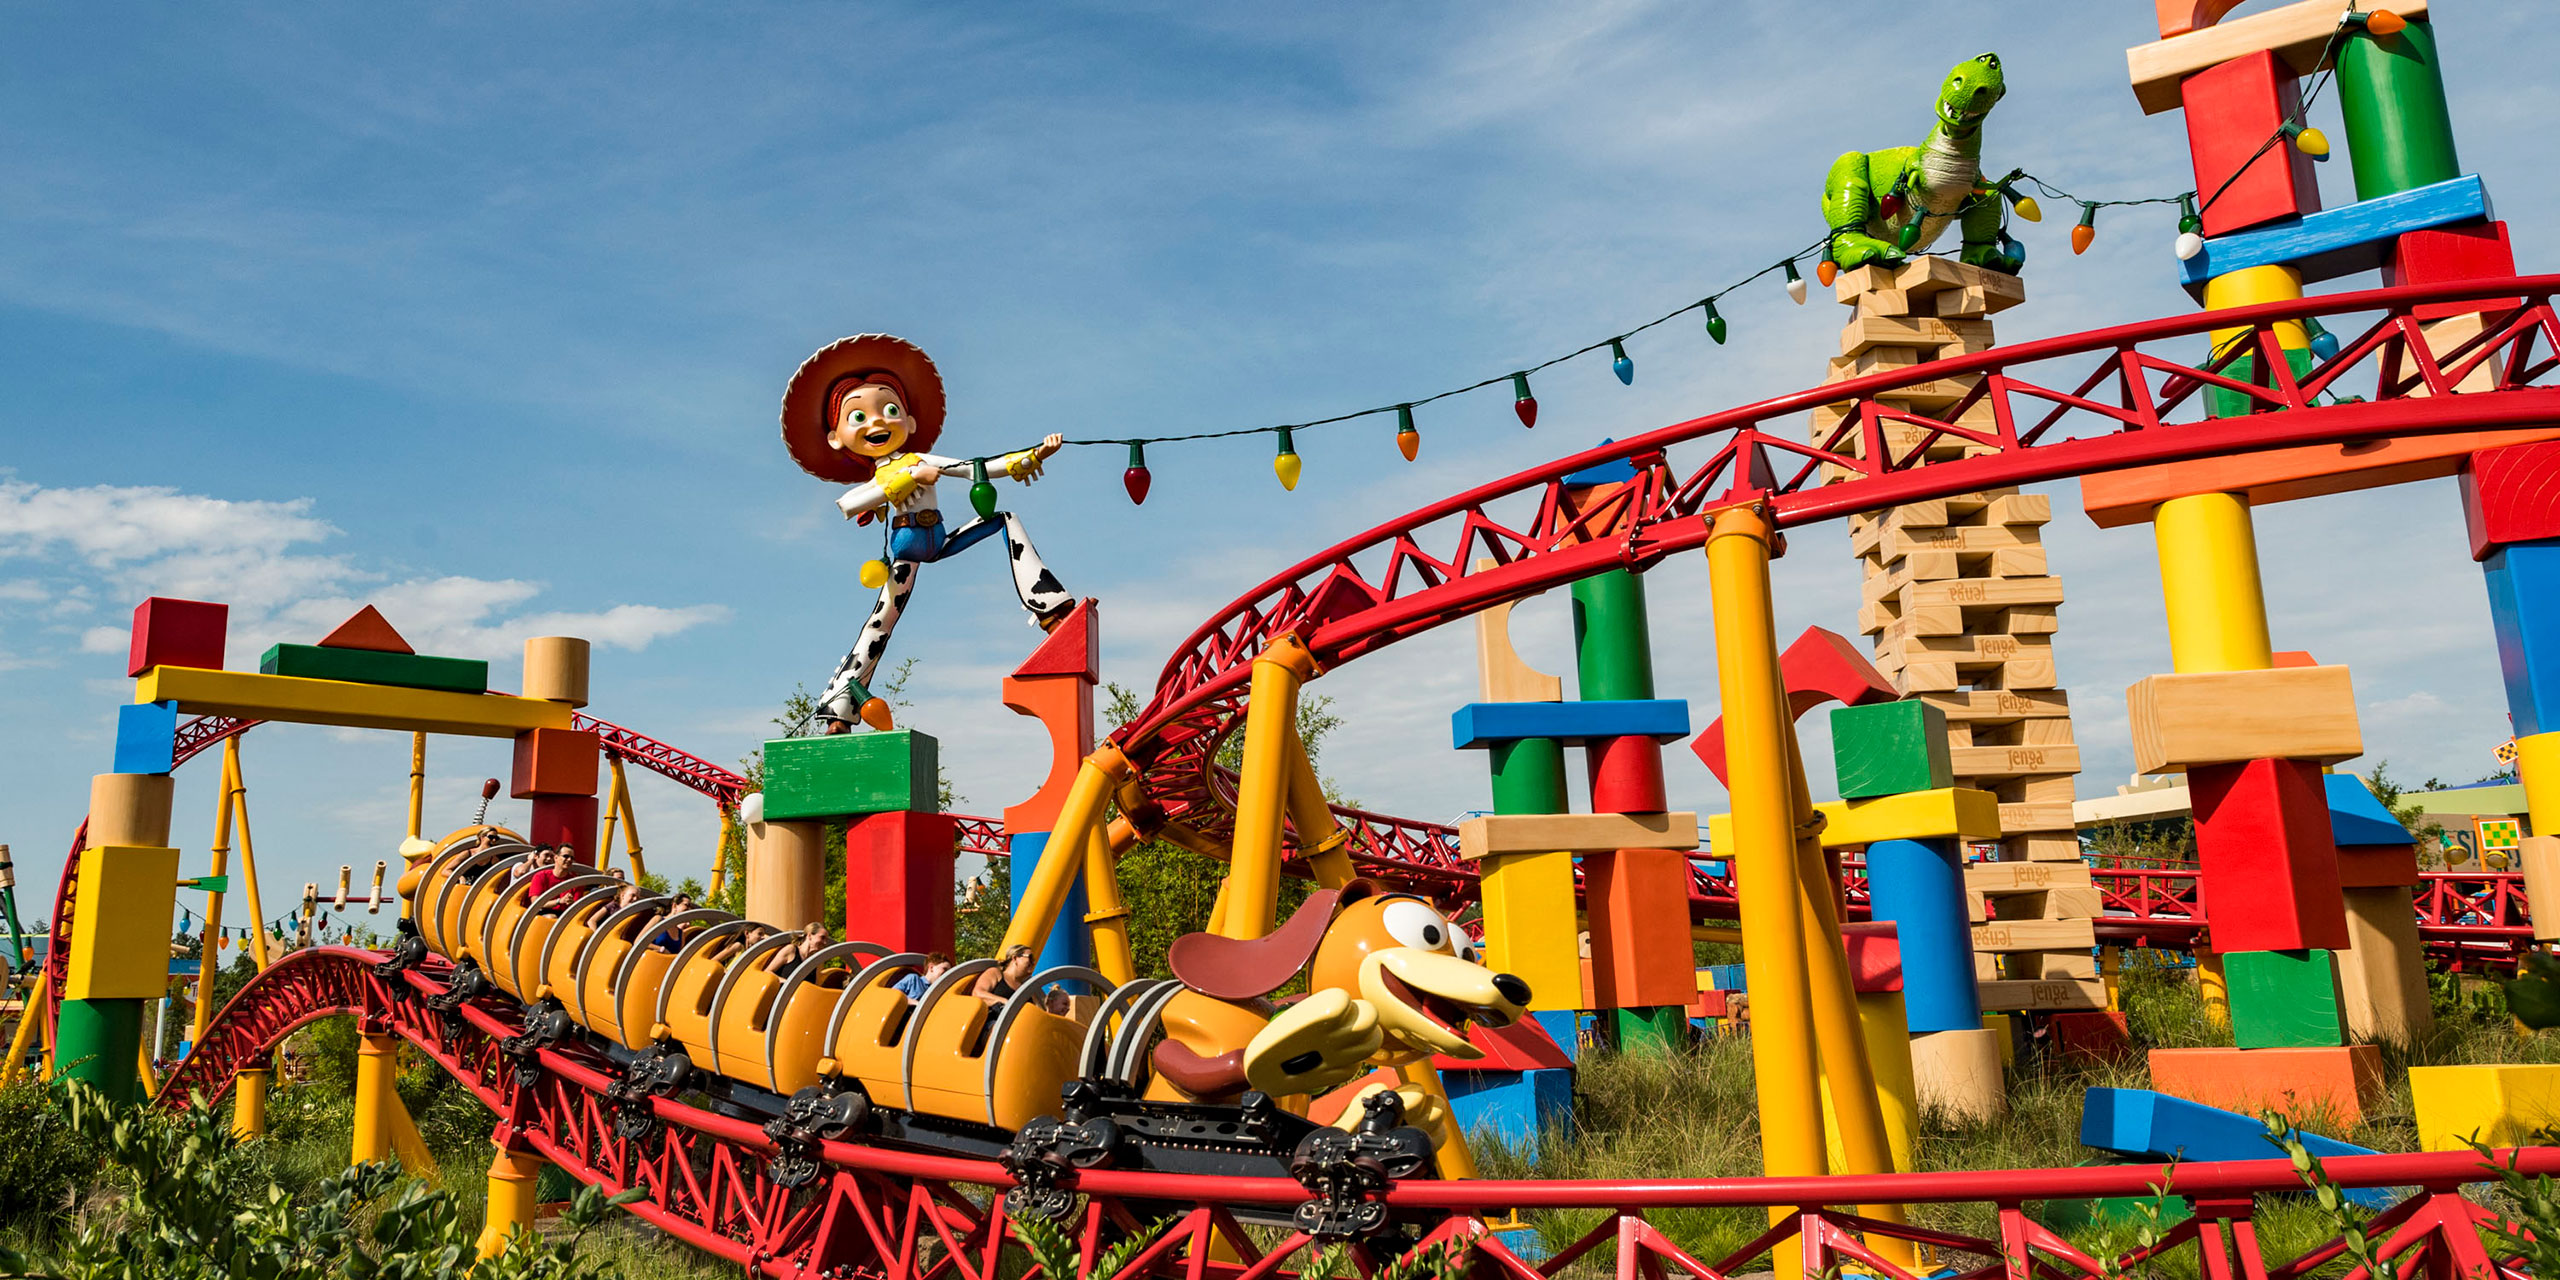 Slinky Dog Coaster at Toy Story Land at Disney World in Orlando; Courtesy of Disney